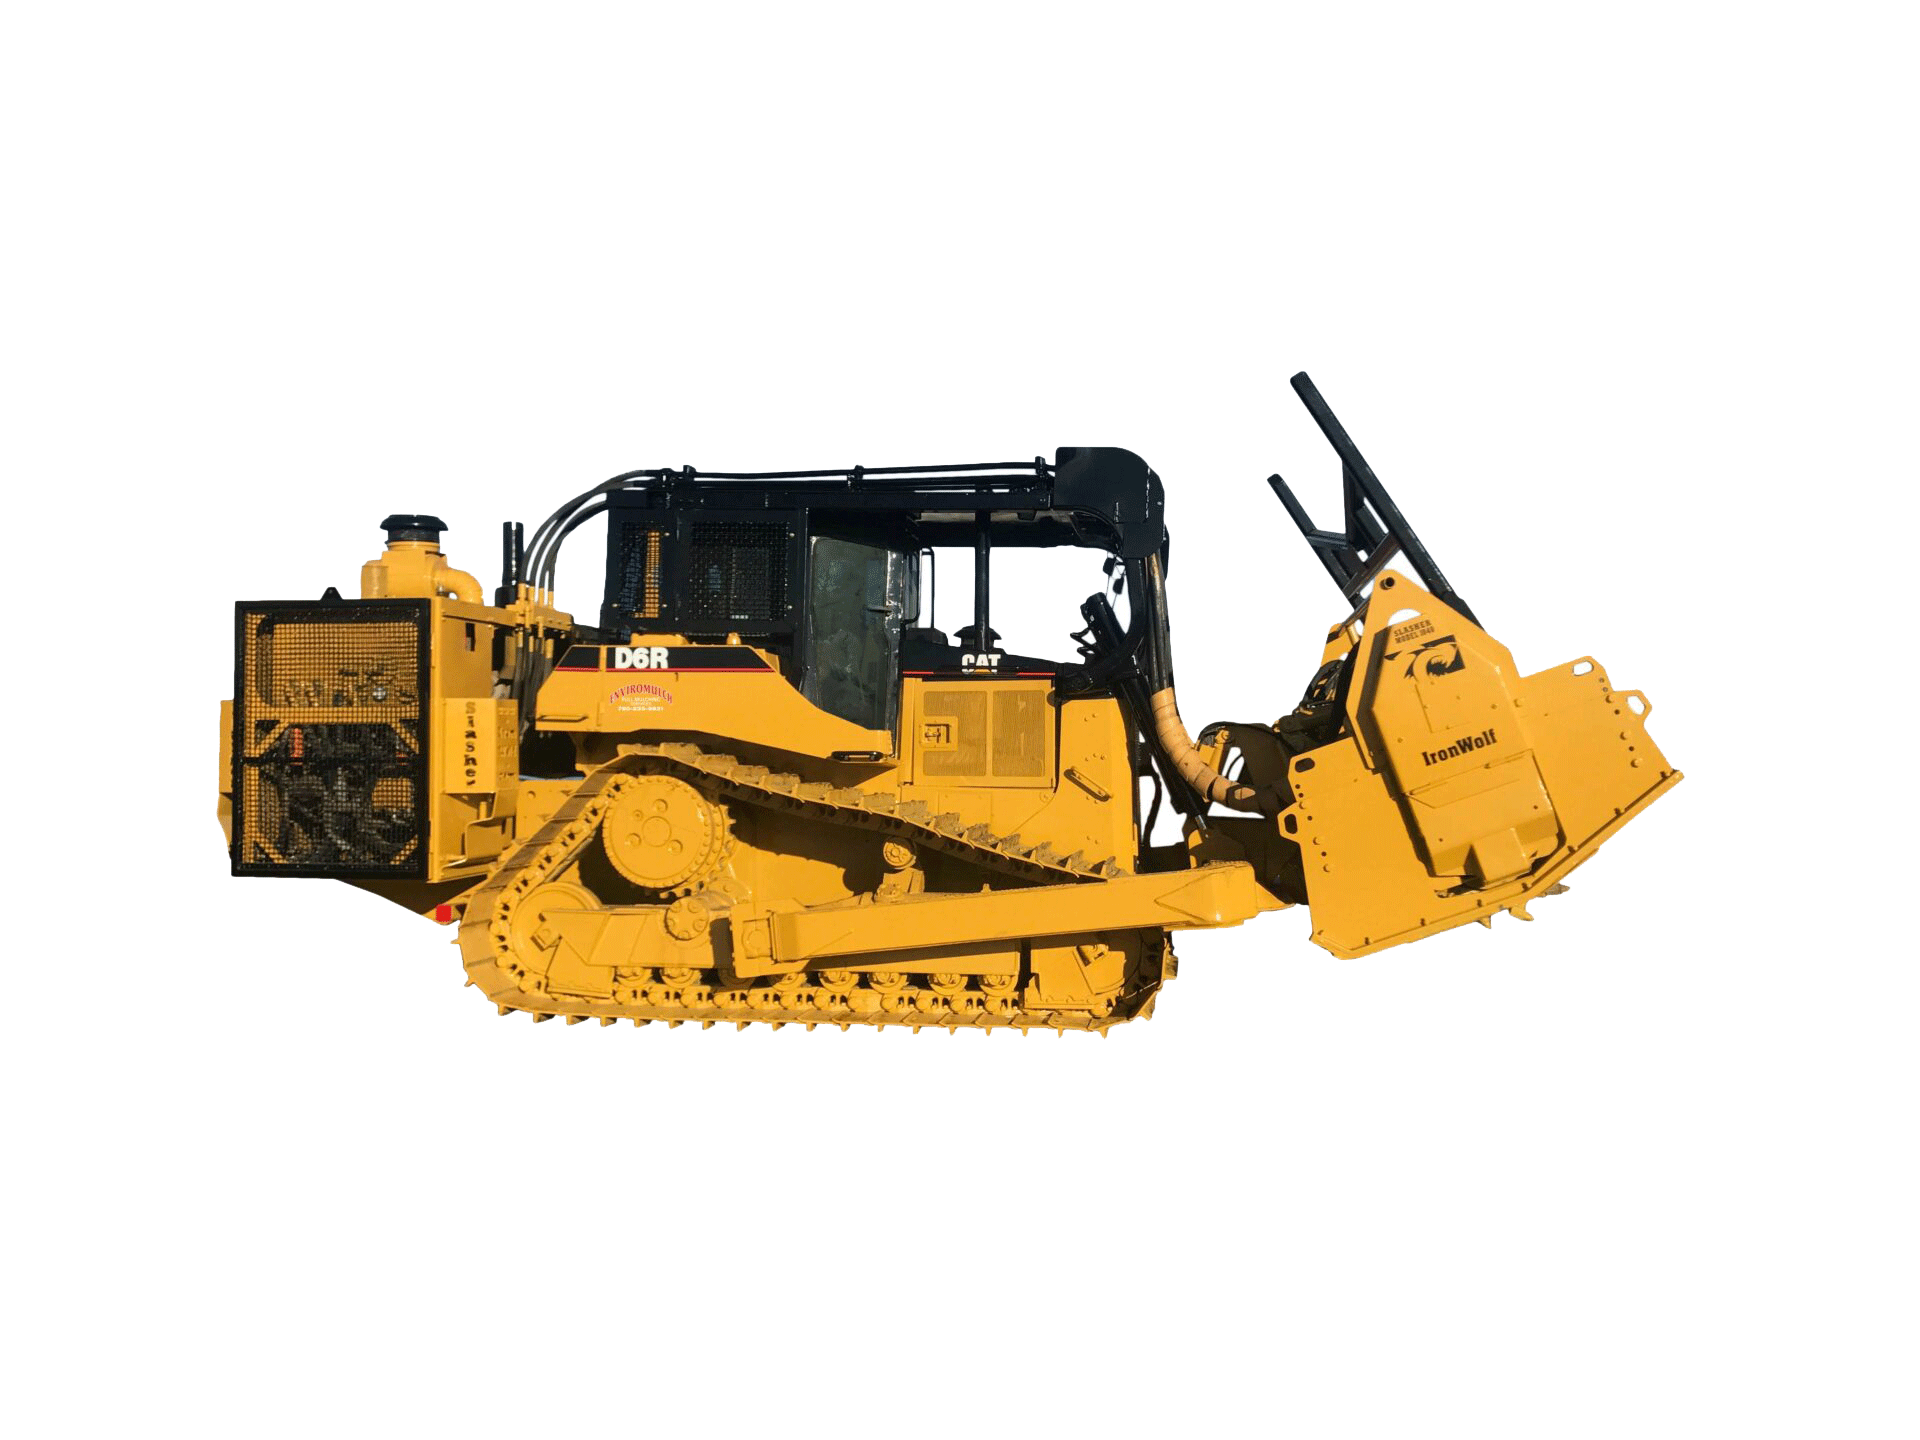 Equipment Quantity: 1 </br> Horsepower: 630 HP </br>  Cutting Drum Width: 120 in (10 ft) </br>  Overall Length: 332 in (27.7 ft) </br> Overall Height: 144 in (12 ft) </br>  Overall Width: 144 in (12 ft) </br>  Ground Clearance: 24 in (2 ft) </br>  Weight (Crawler and Attachments): 88,3321bs (40,066kgs)